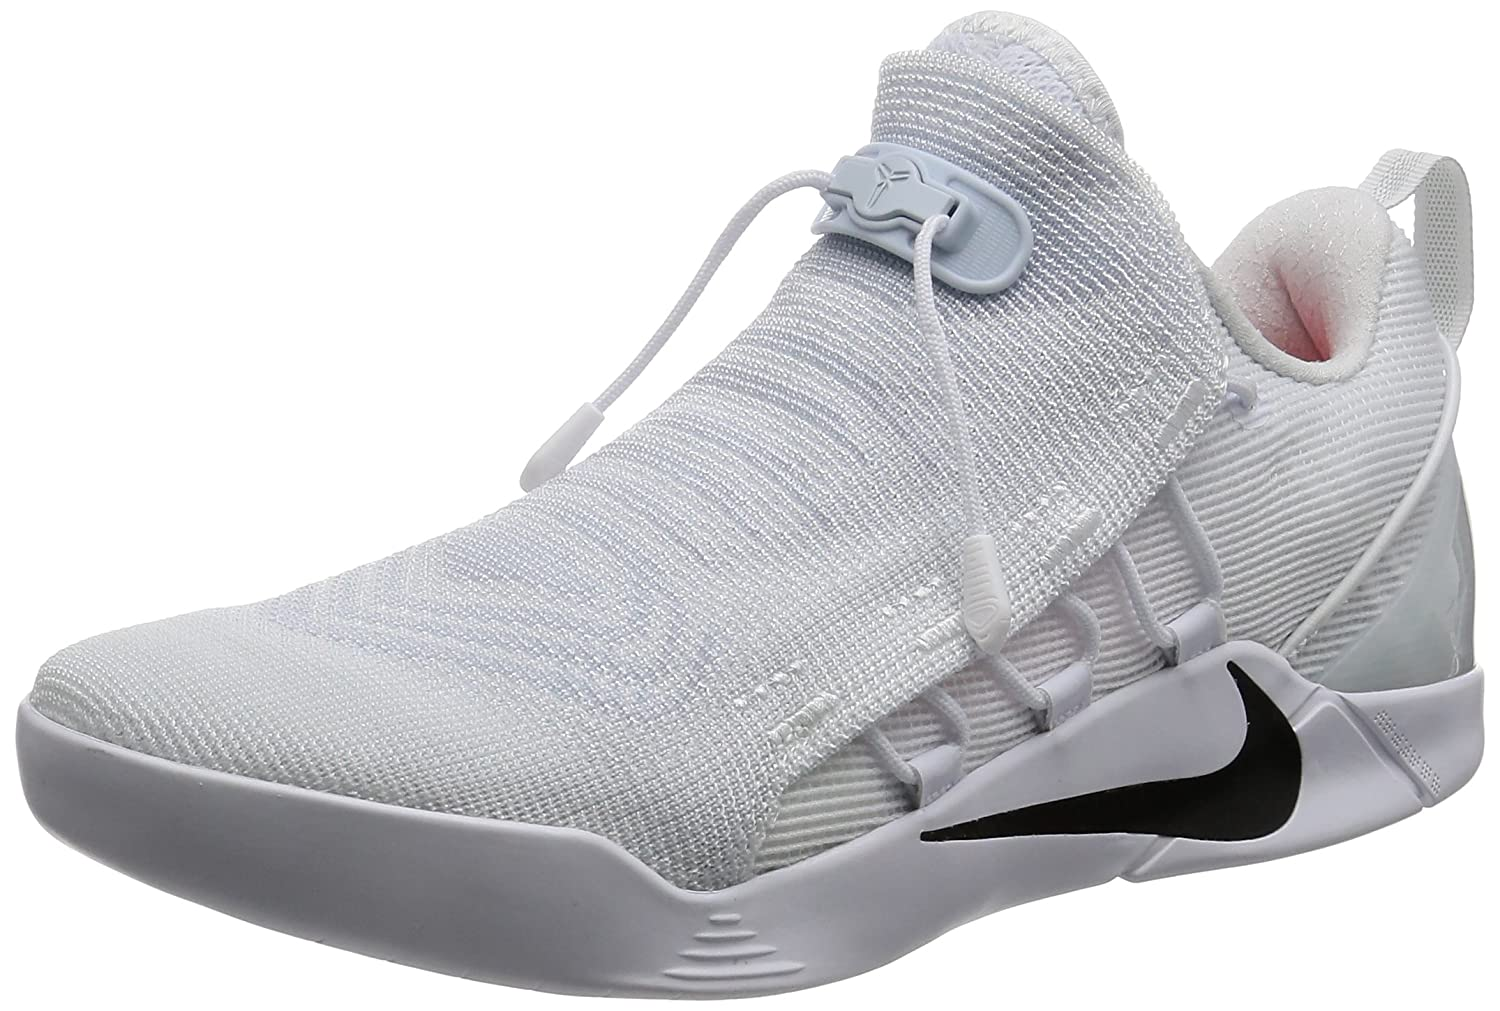 596d5f4b707d Amazon.com  NIKE Men s Kobe A.D. NXT Basketball Shoe (9 D(M) US ...